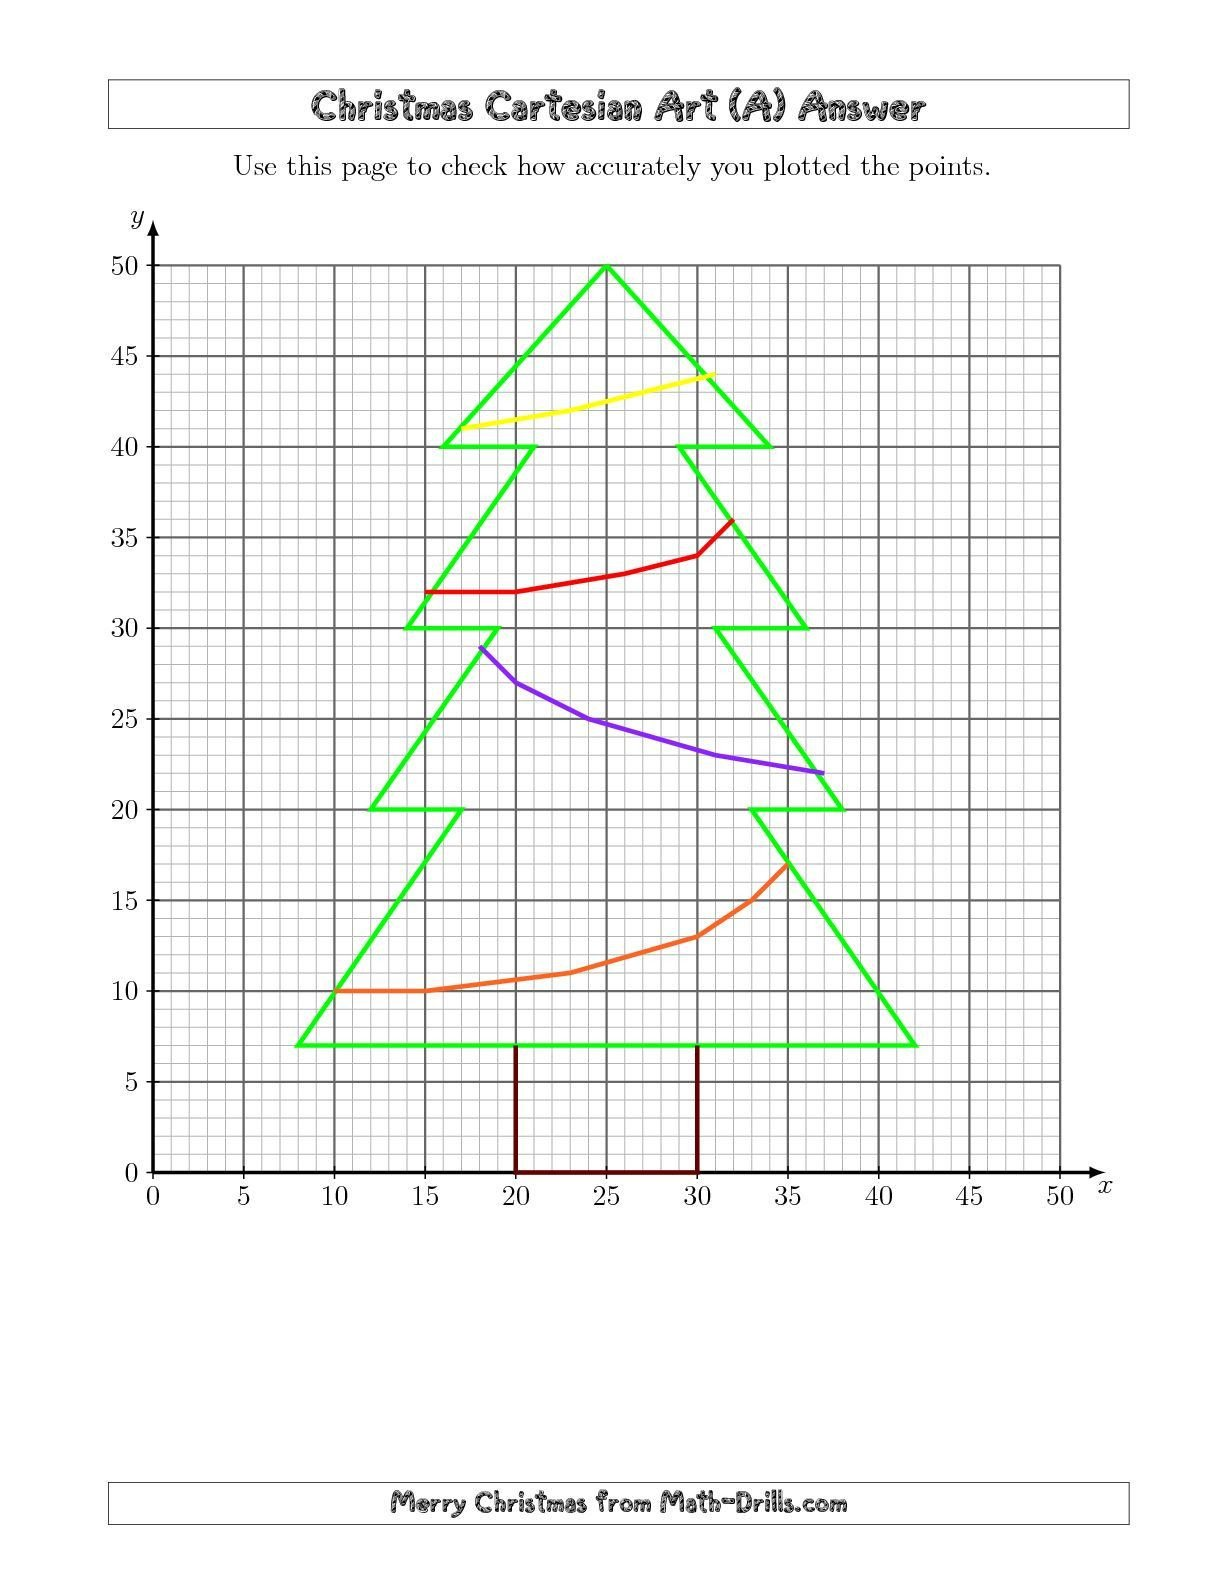 Christmas Coordinates Worksheets the Christmas Cartesian Art Tree A Math Worksheet From the